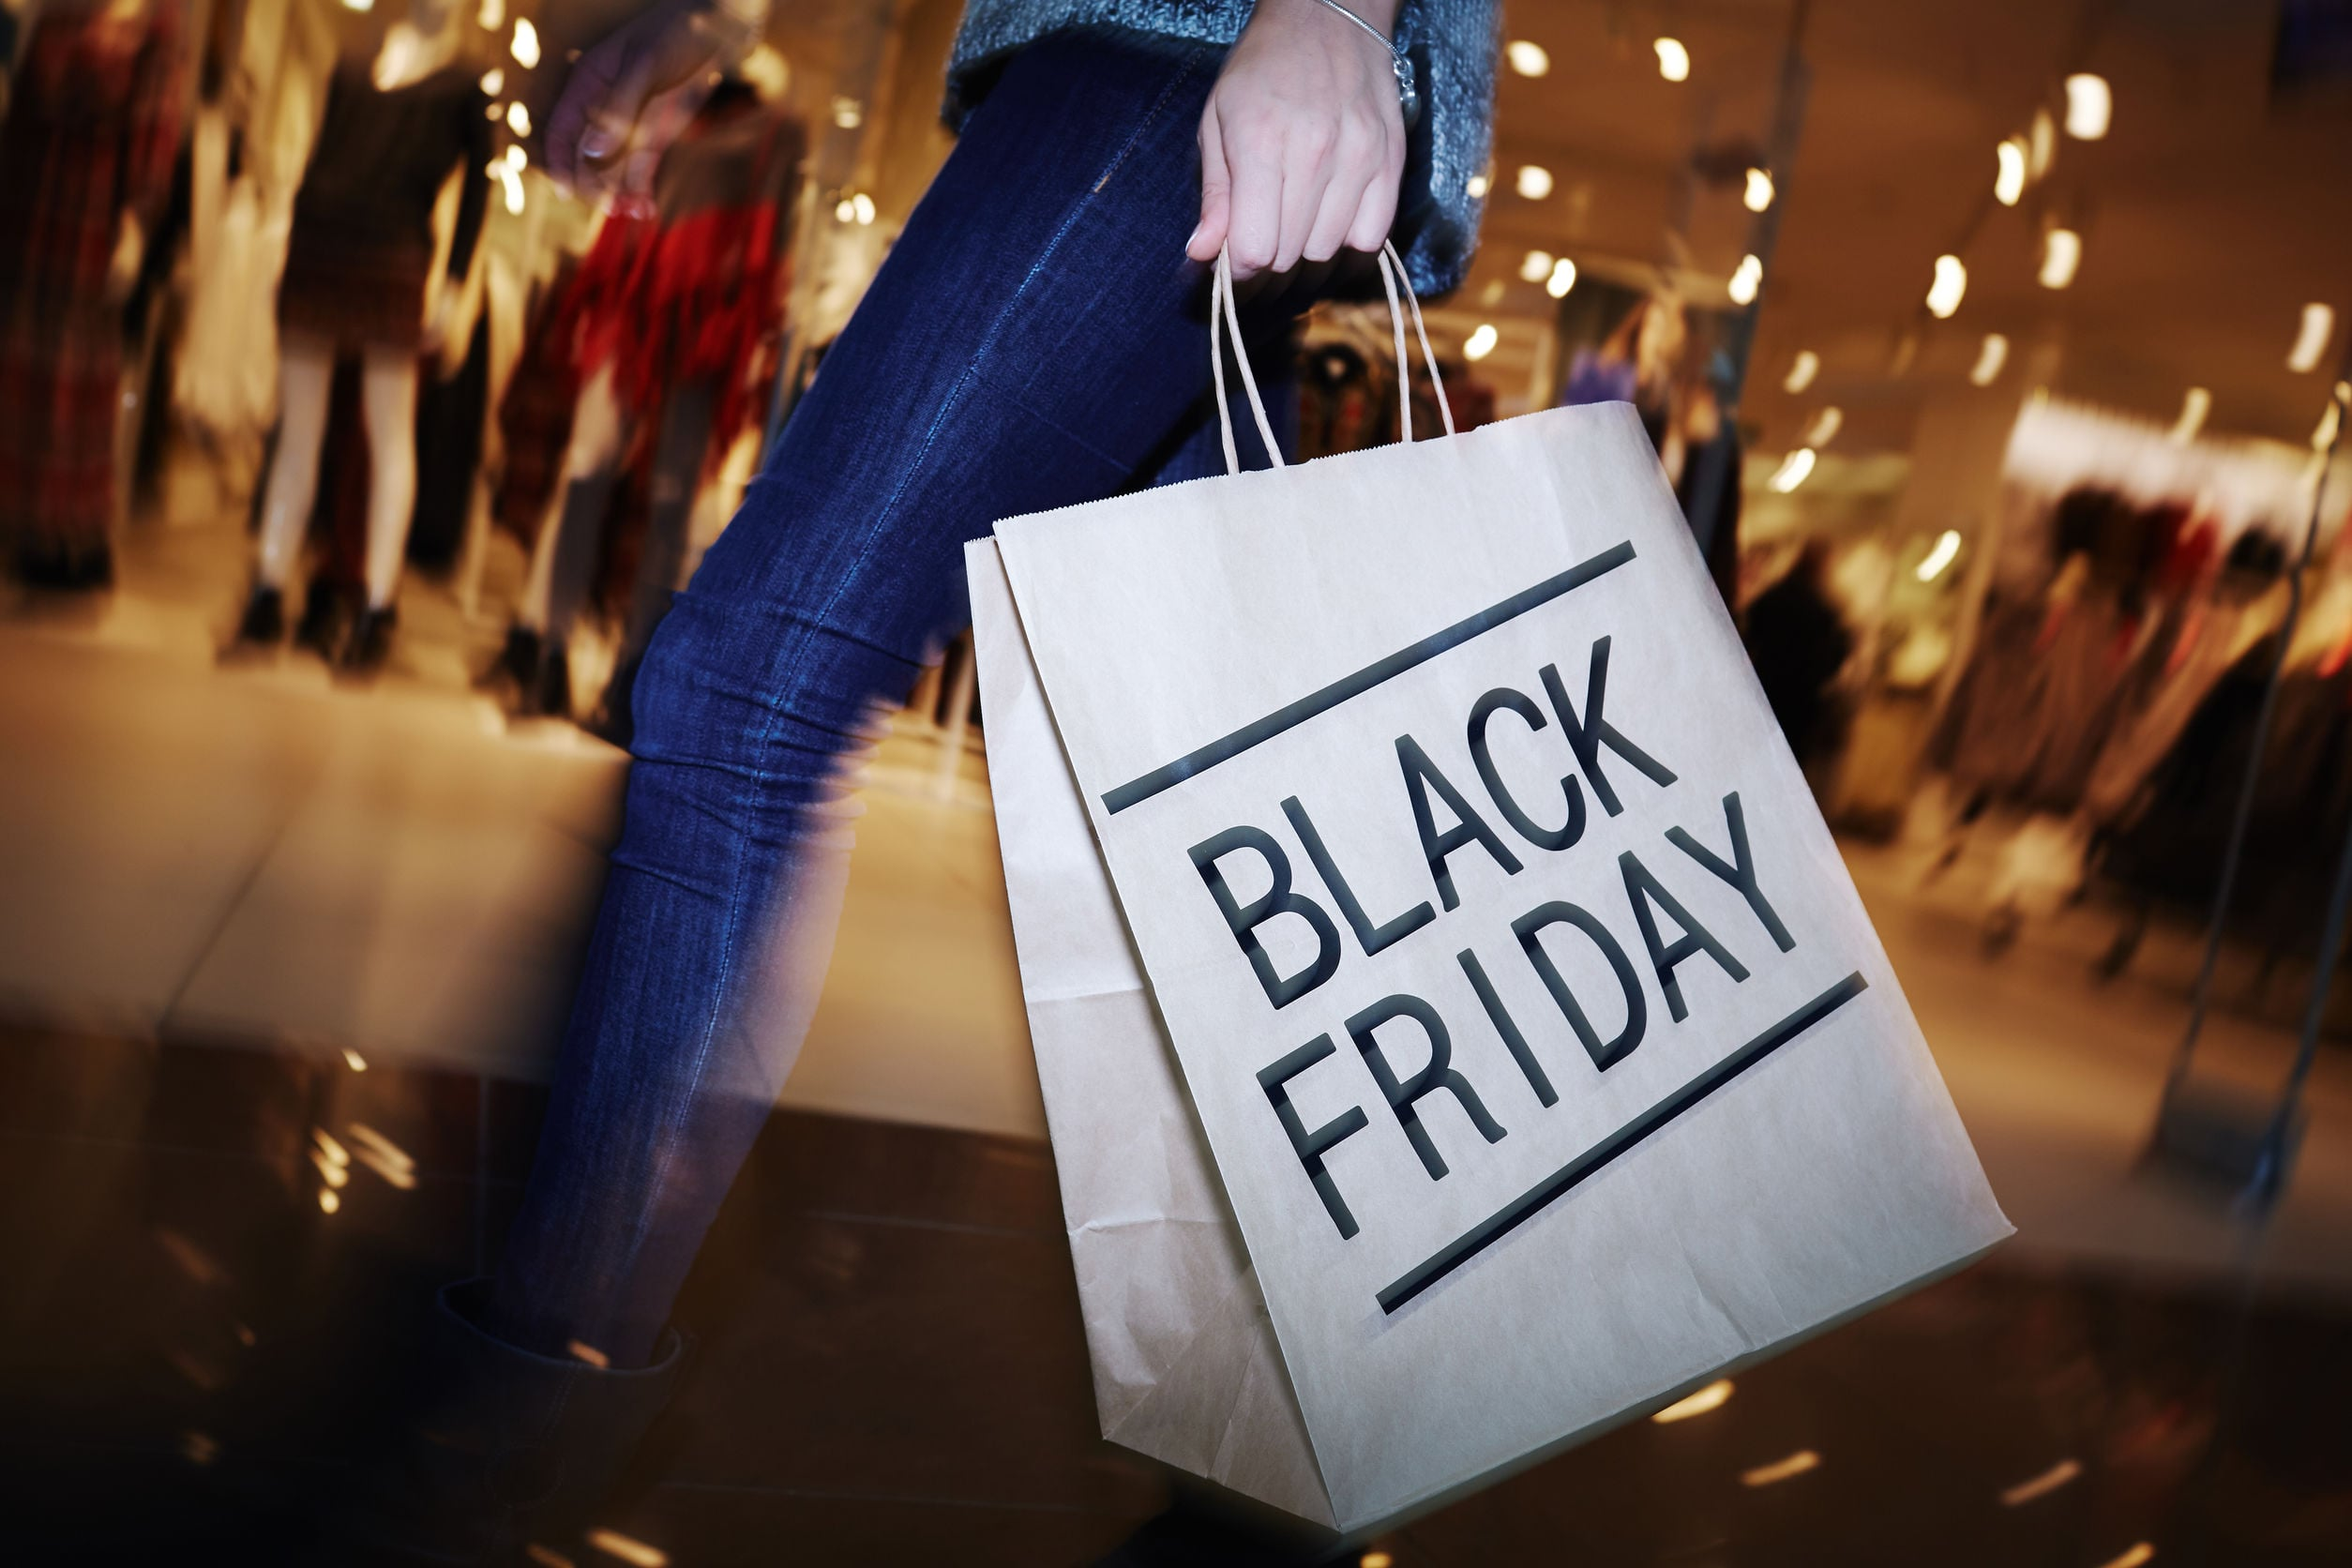 Fort Lauderdale Black Friday Injury Lawyers